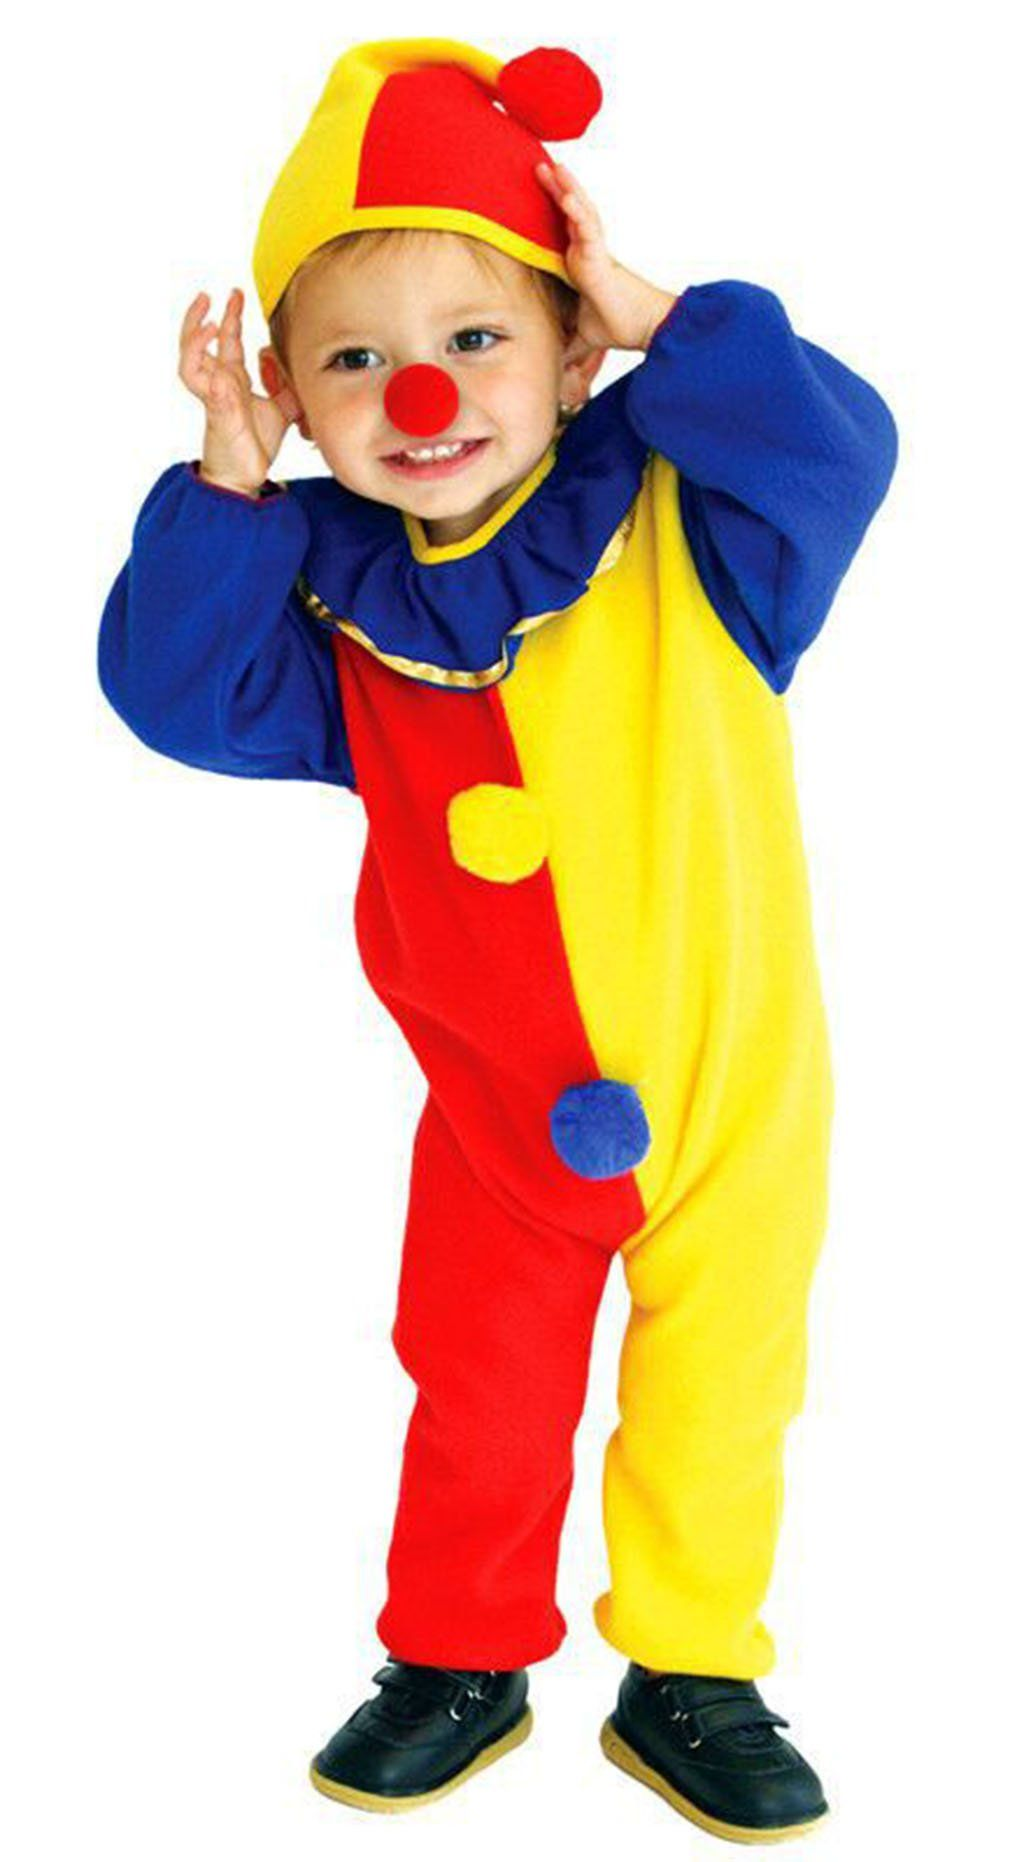 Sweet Clown Costume Kids Baby Halloween Cosplay Party Carnival Thick for  Winter with Hat Size3 *** Ext… | Toddler clown costume, Clown costume,  Fancy dress for kids